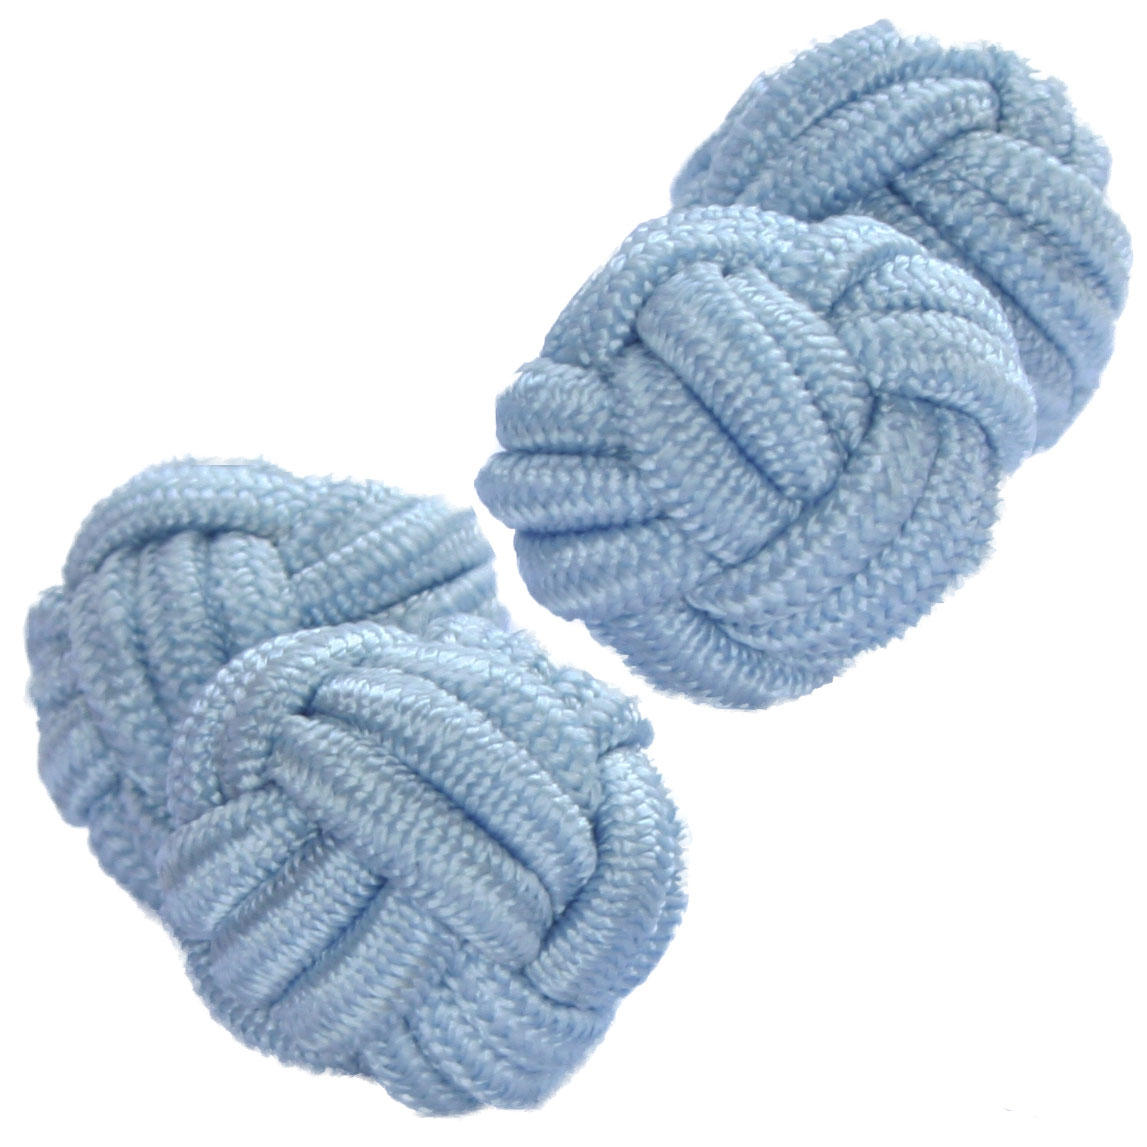 Pale Blue Silk Knot Cufflinks from Cuffs & Co